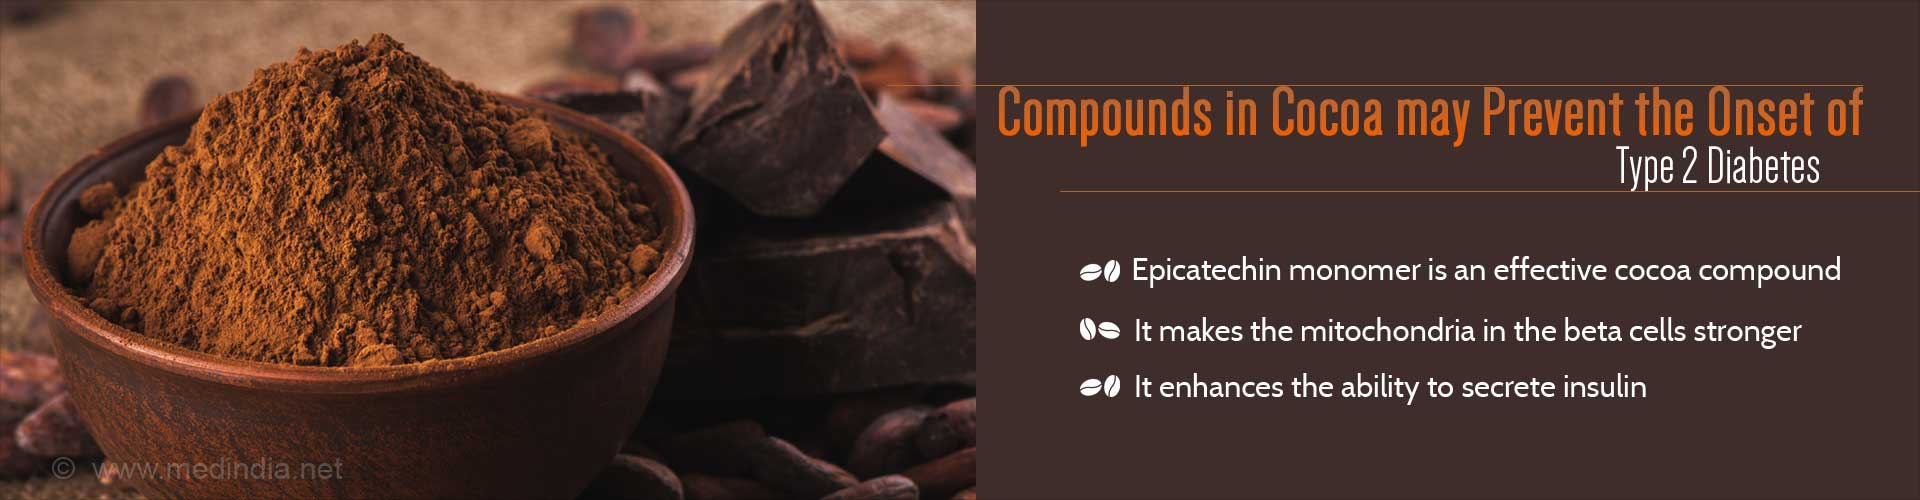 Compounds in cocoa may prevent the onset of Type 2 diabetes